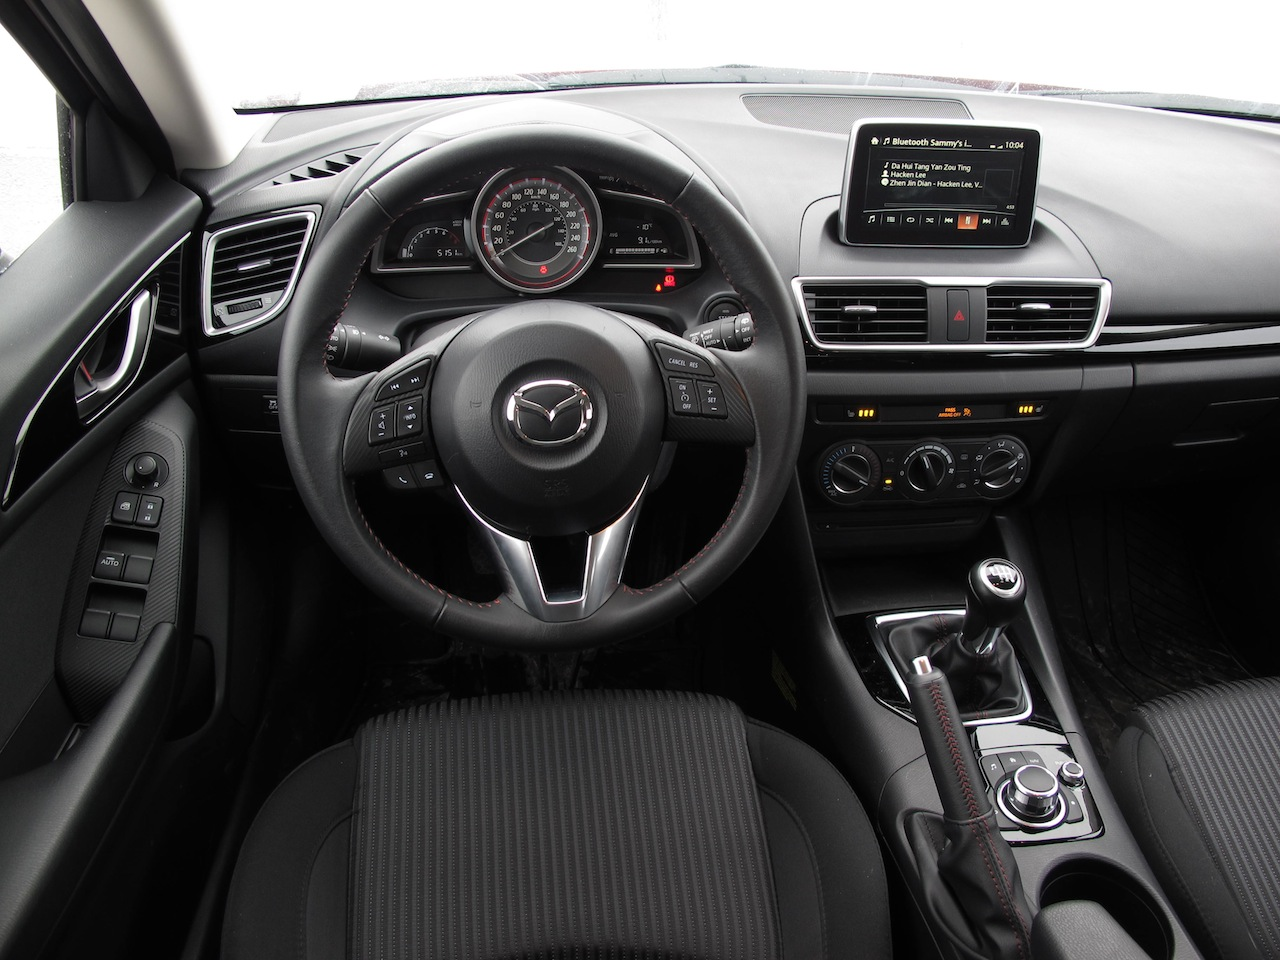 2014 mazda 3 sport gs soul red interior dashboard